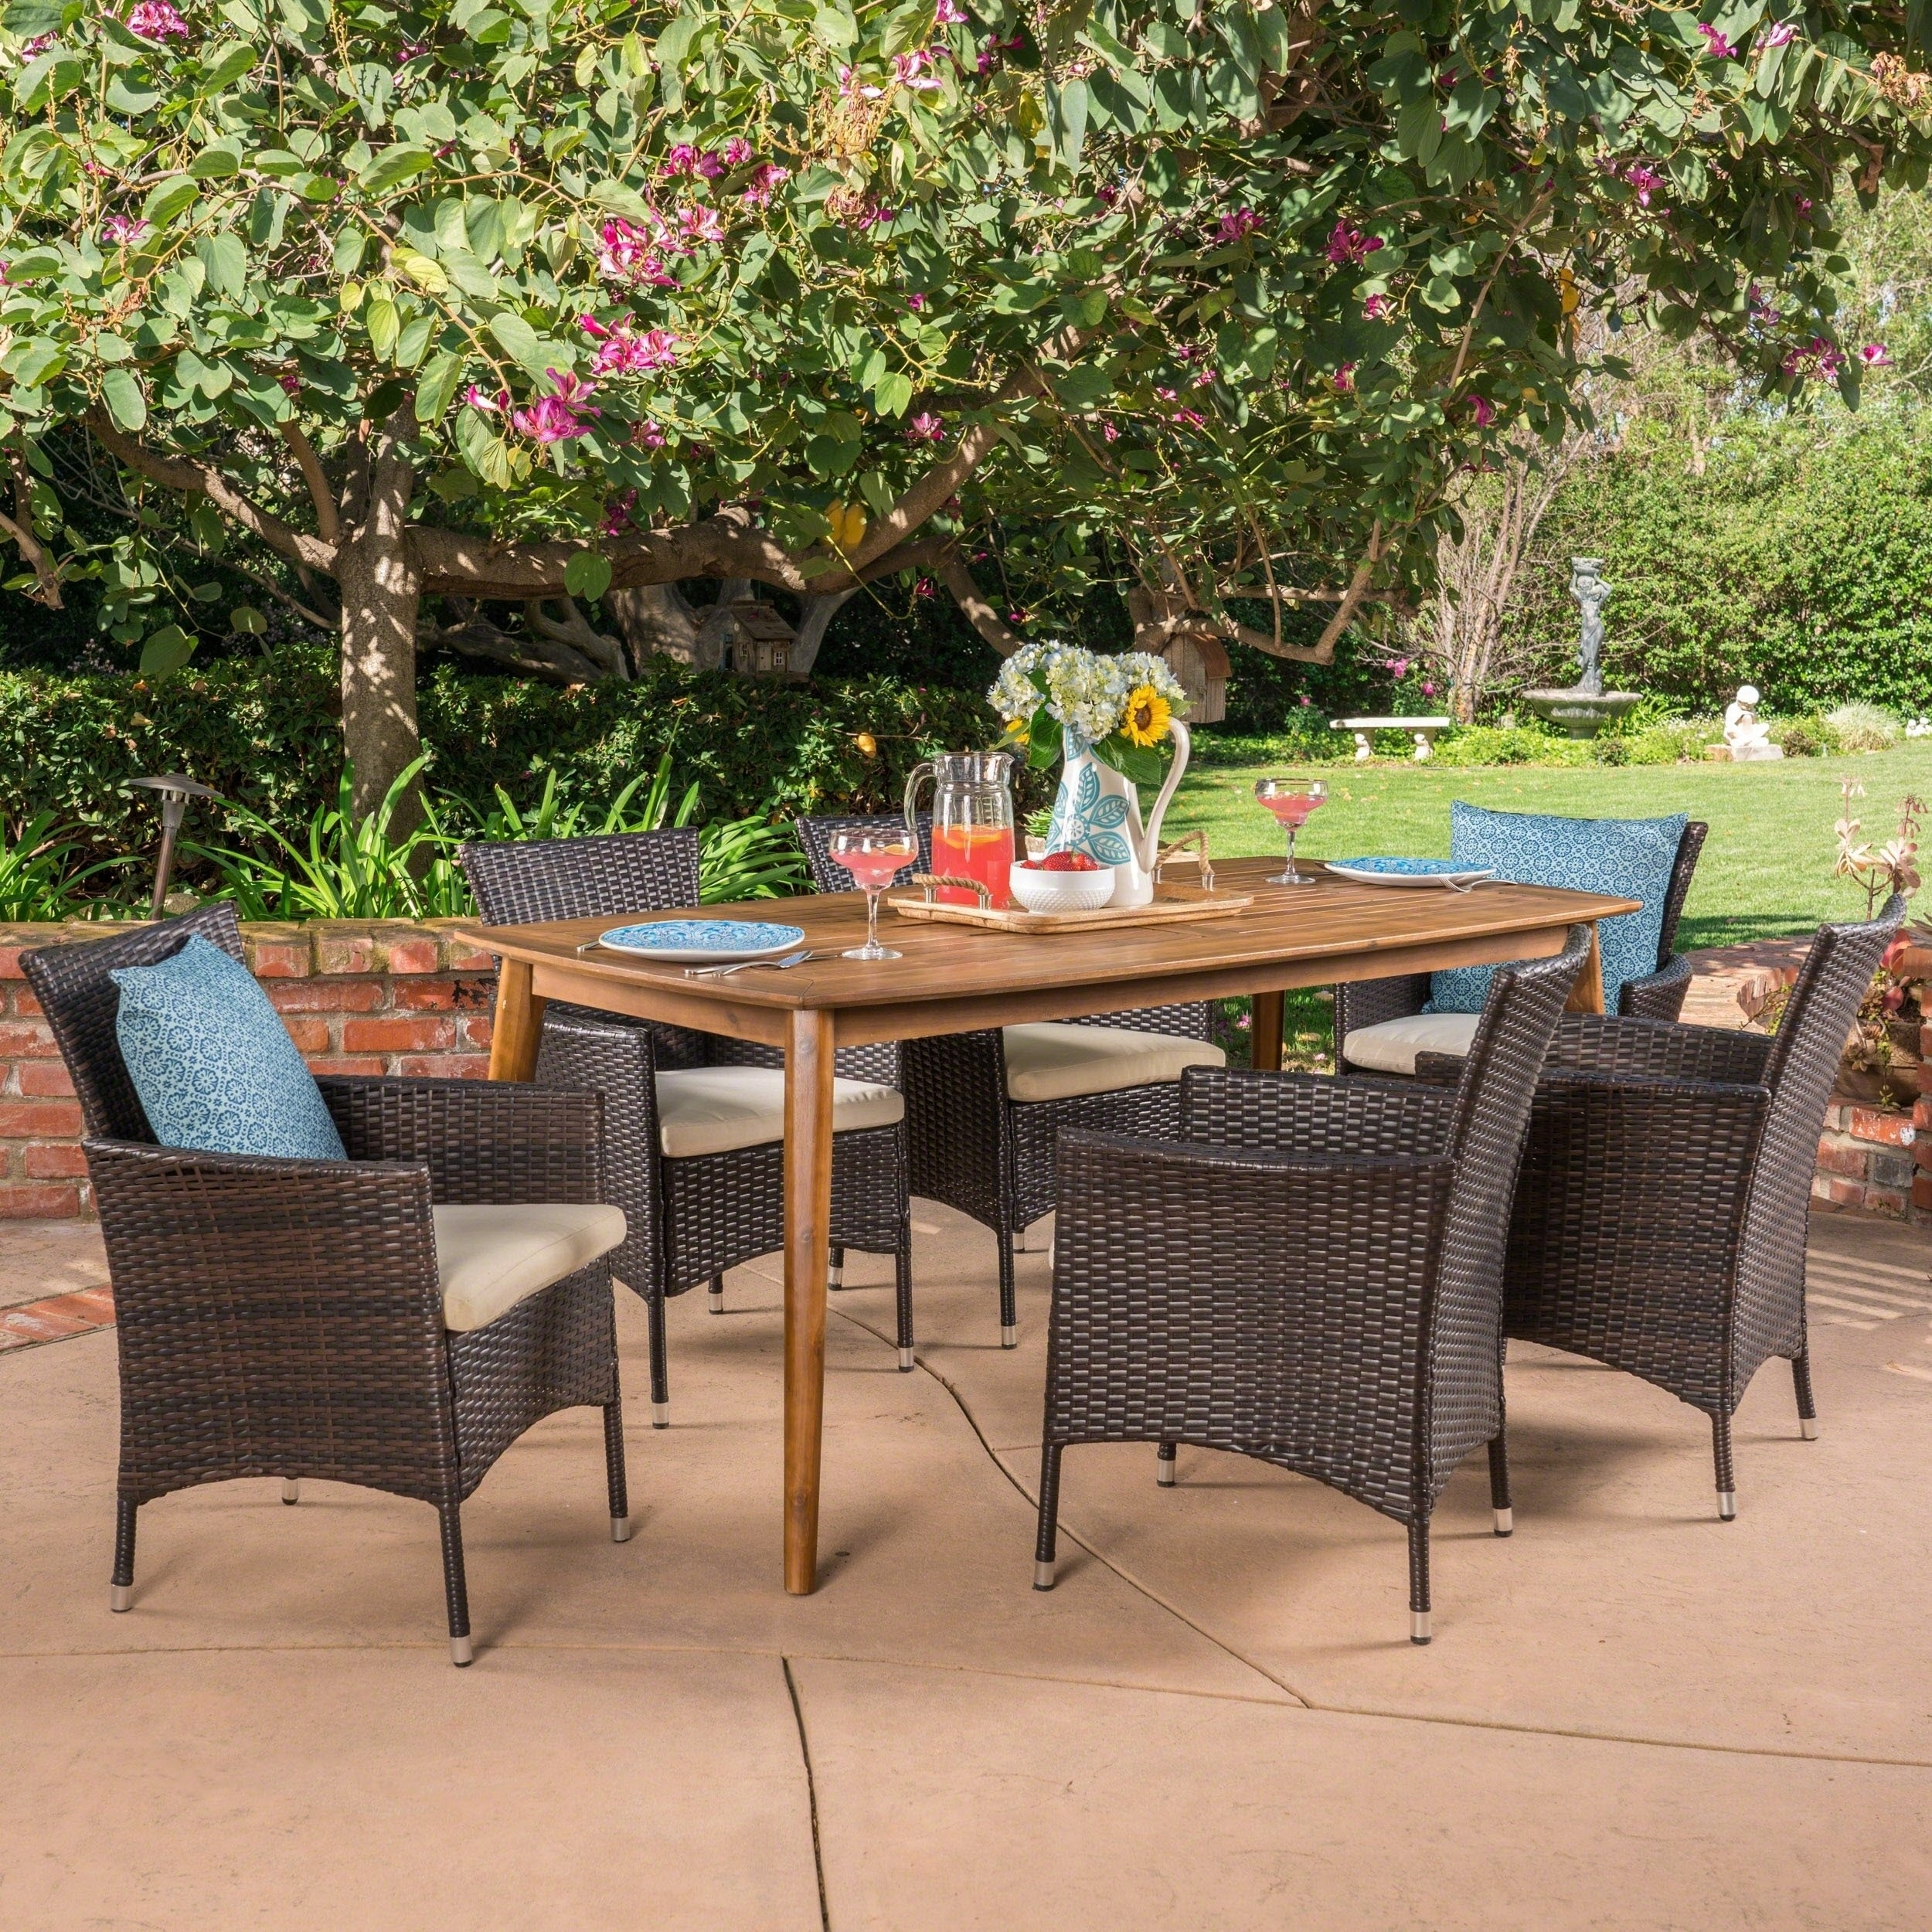 Shop Jaxon Outdoor 7 Piece Multibrown Pe Wicker Dining Set With Regarding 2018 Jaxon 6 Piece Rectangle Dining Sets With Bench & Wood Chairs (View 6 of 20)